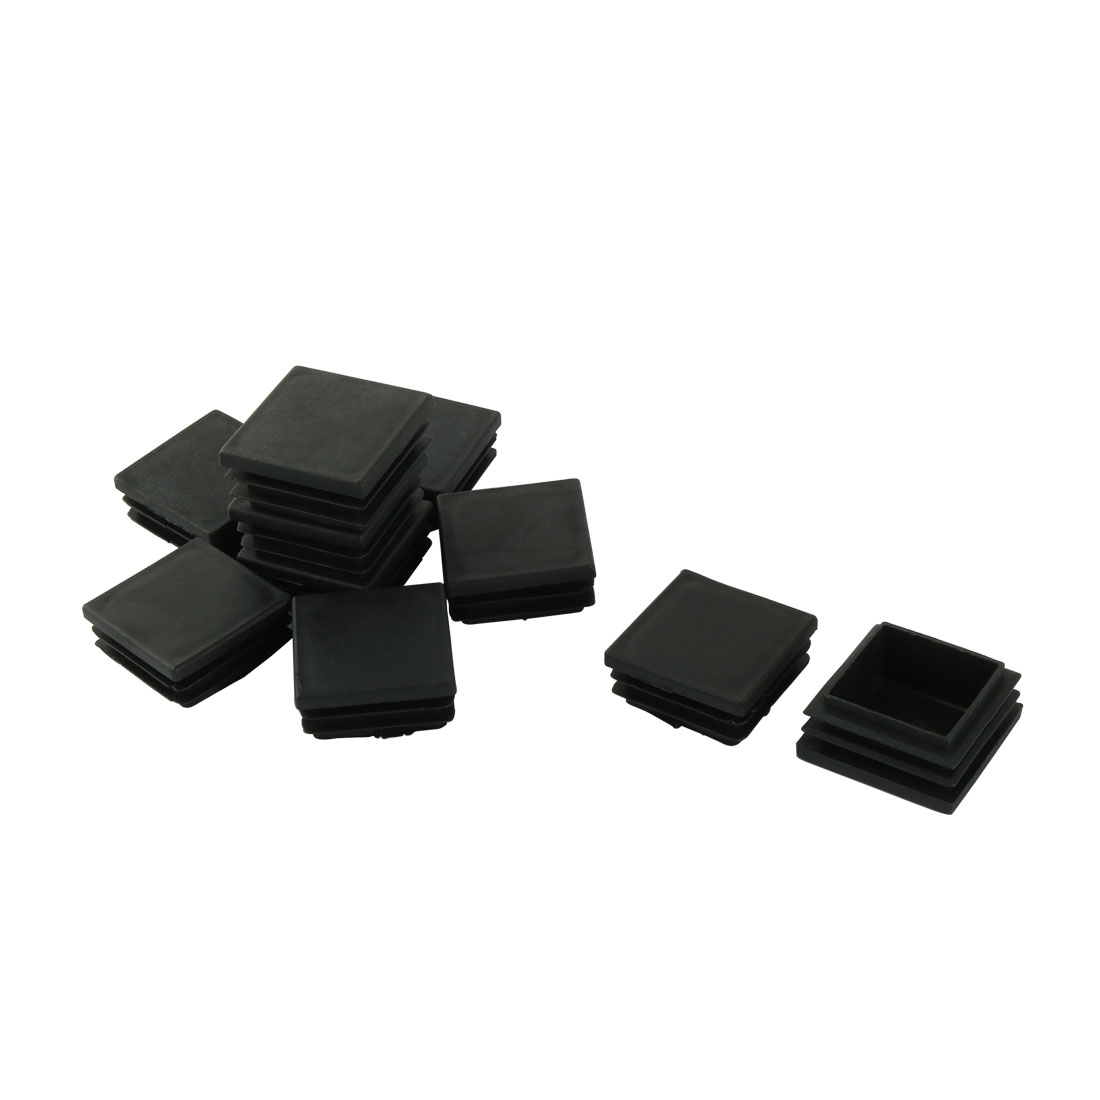 38mm x 38mm Plastic Square Tube Inserts End Blanking Cap Black 10 Pcs